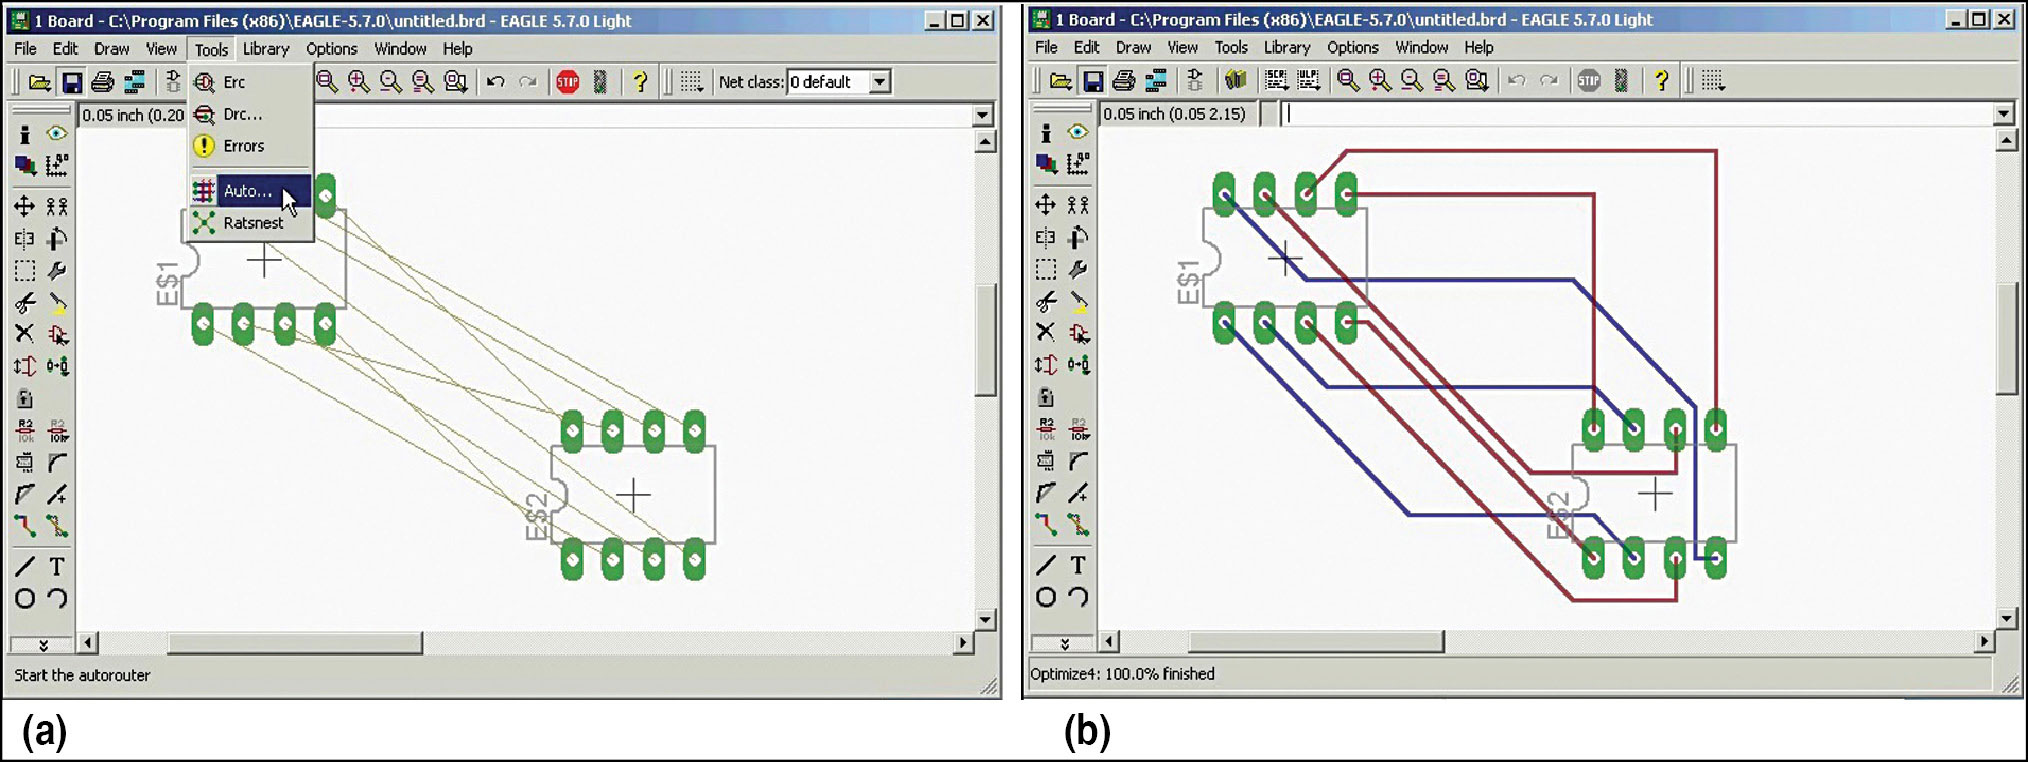 Fig. 2: Make your design route by itself: (a) before autorouting, and (b) after autorouting (Image courtesy: www.youtube.com)